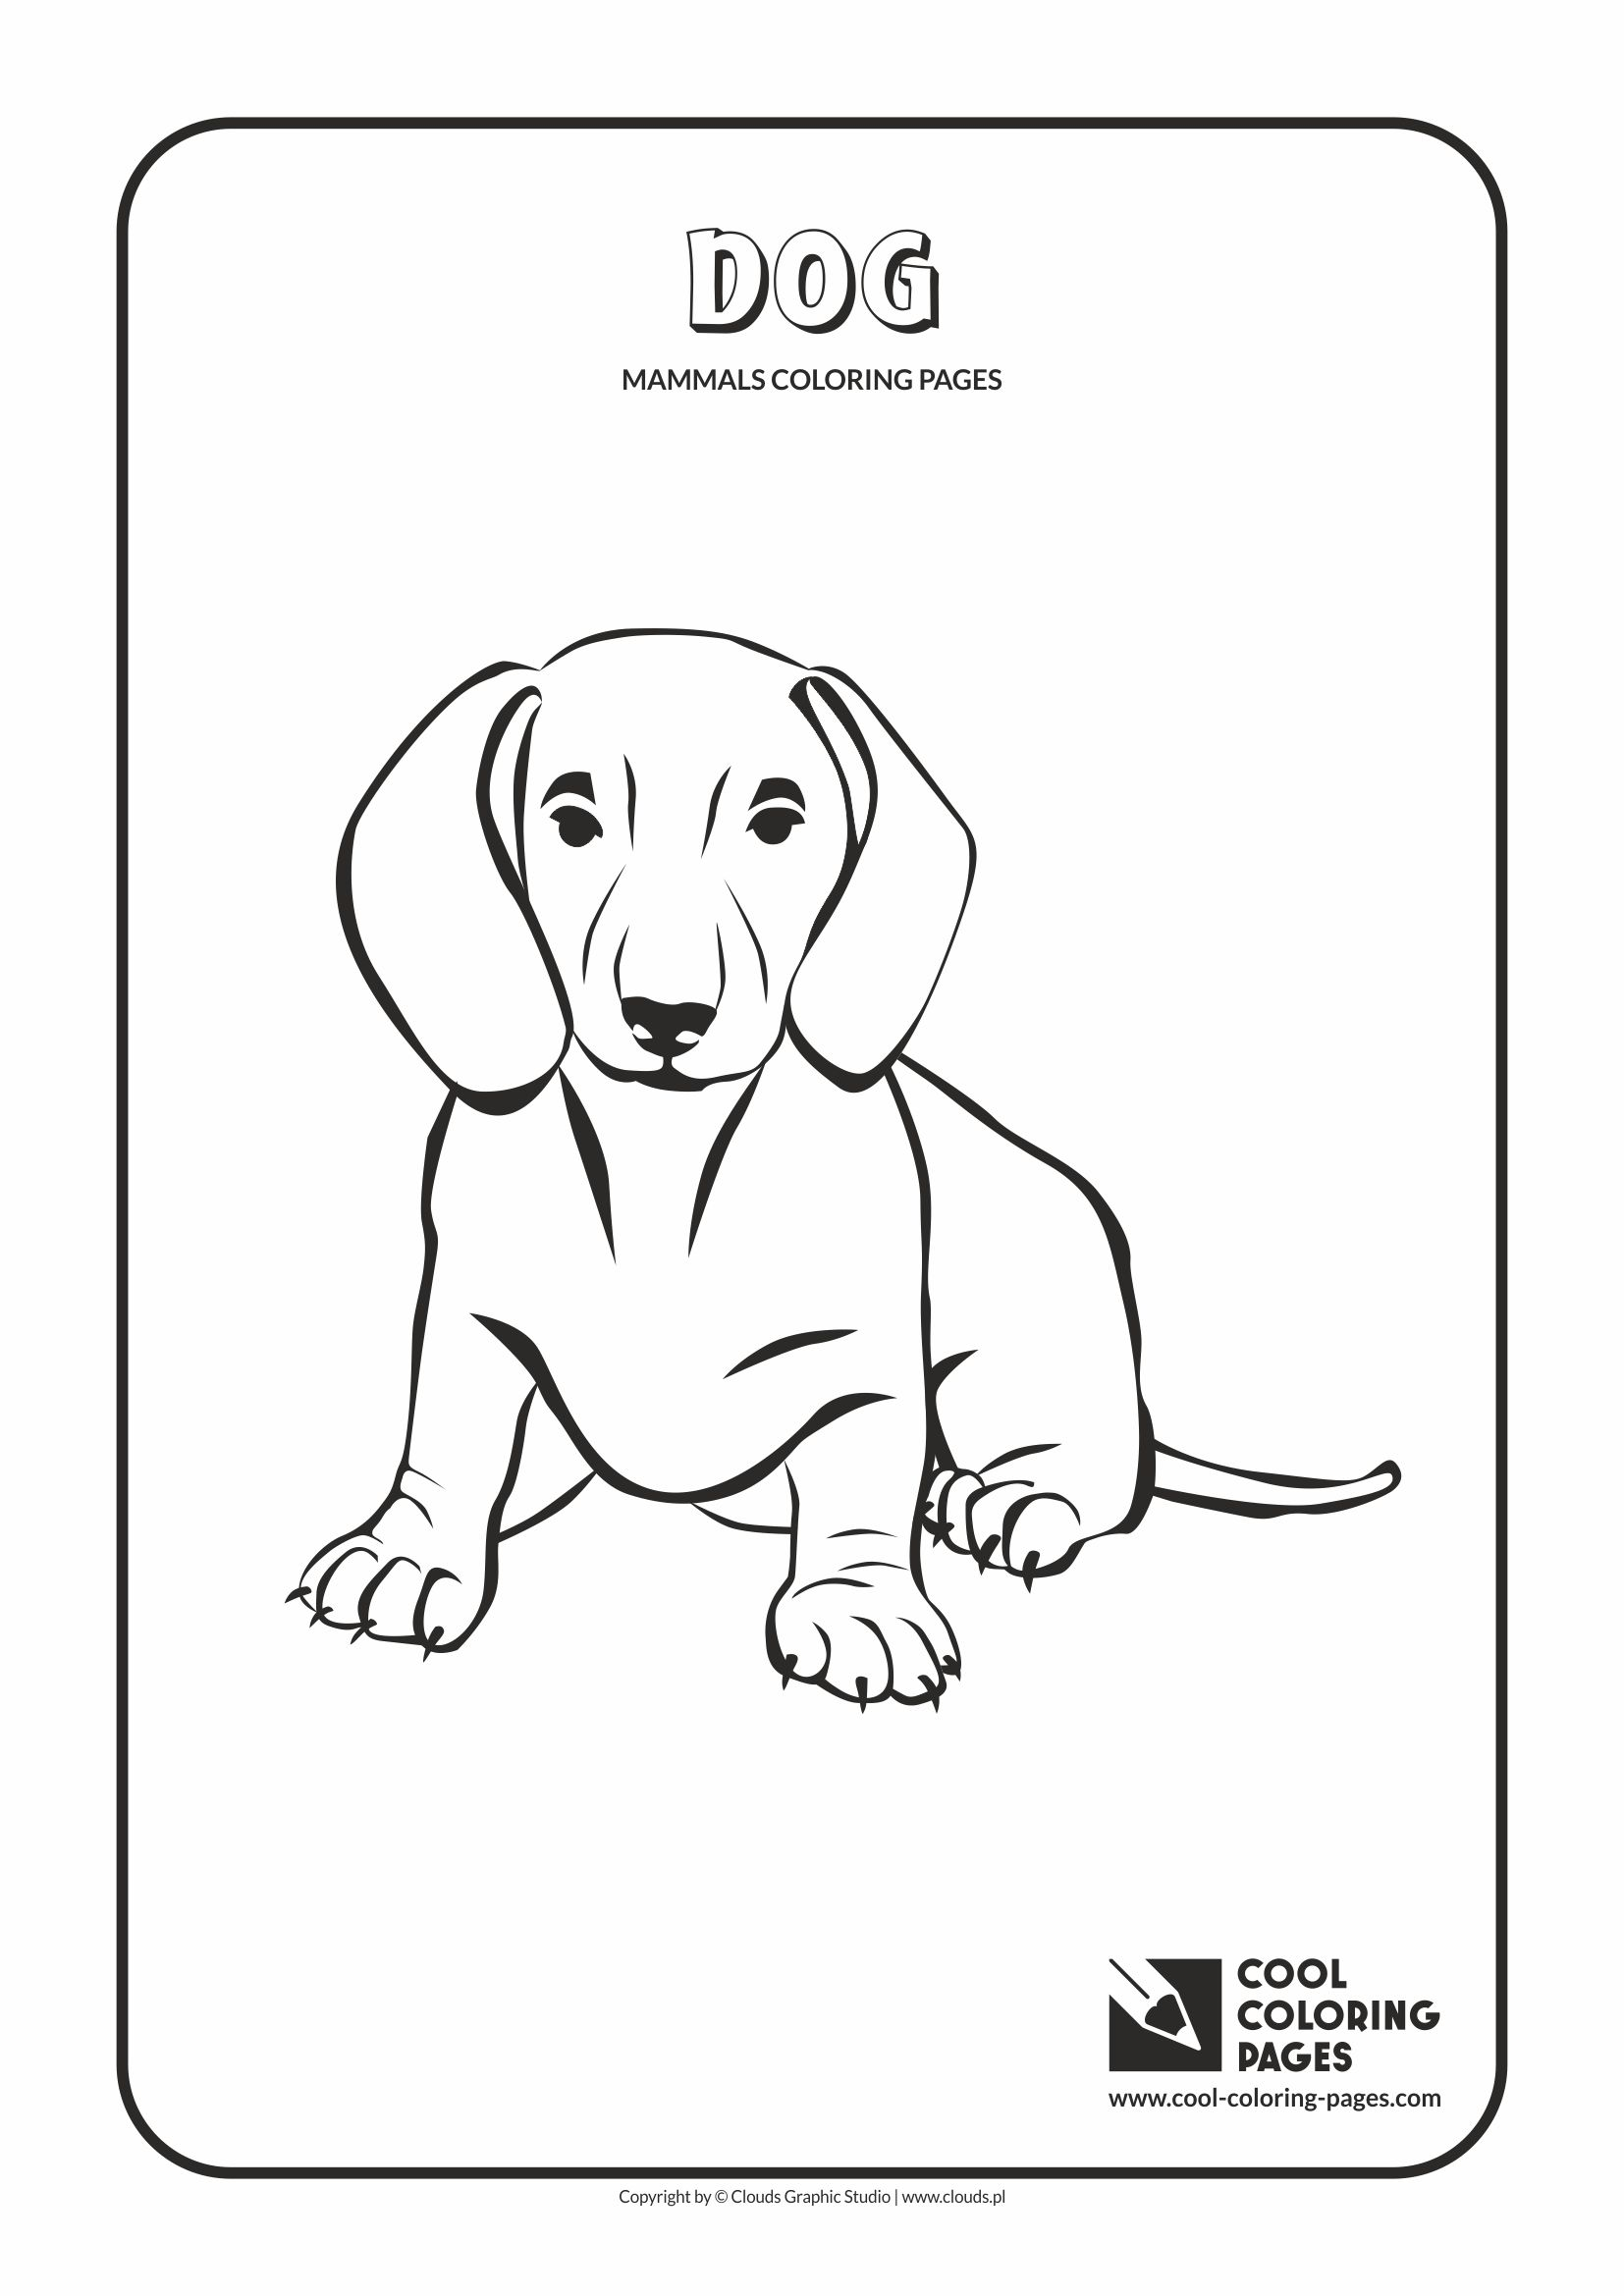 Cool Coloring Pages - Animals / Mammals. Coloring with dog